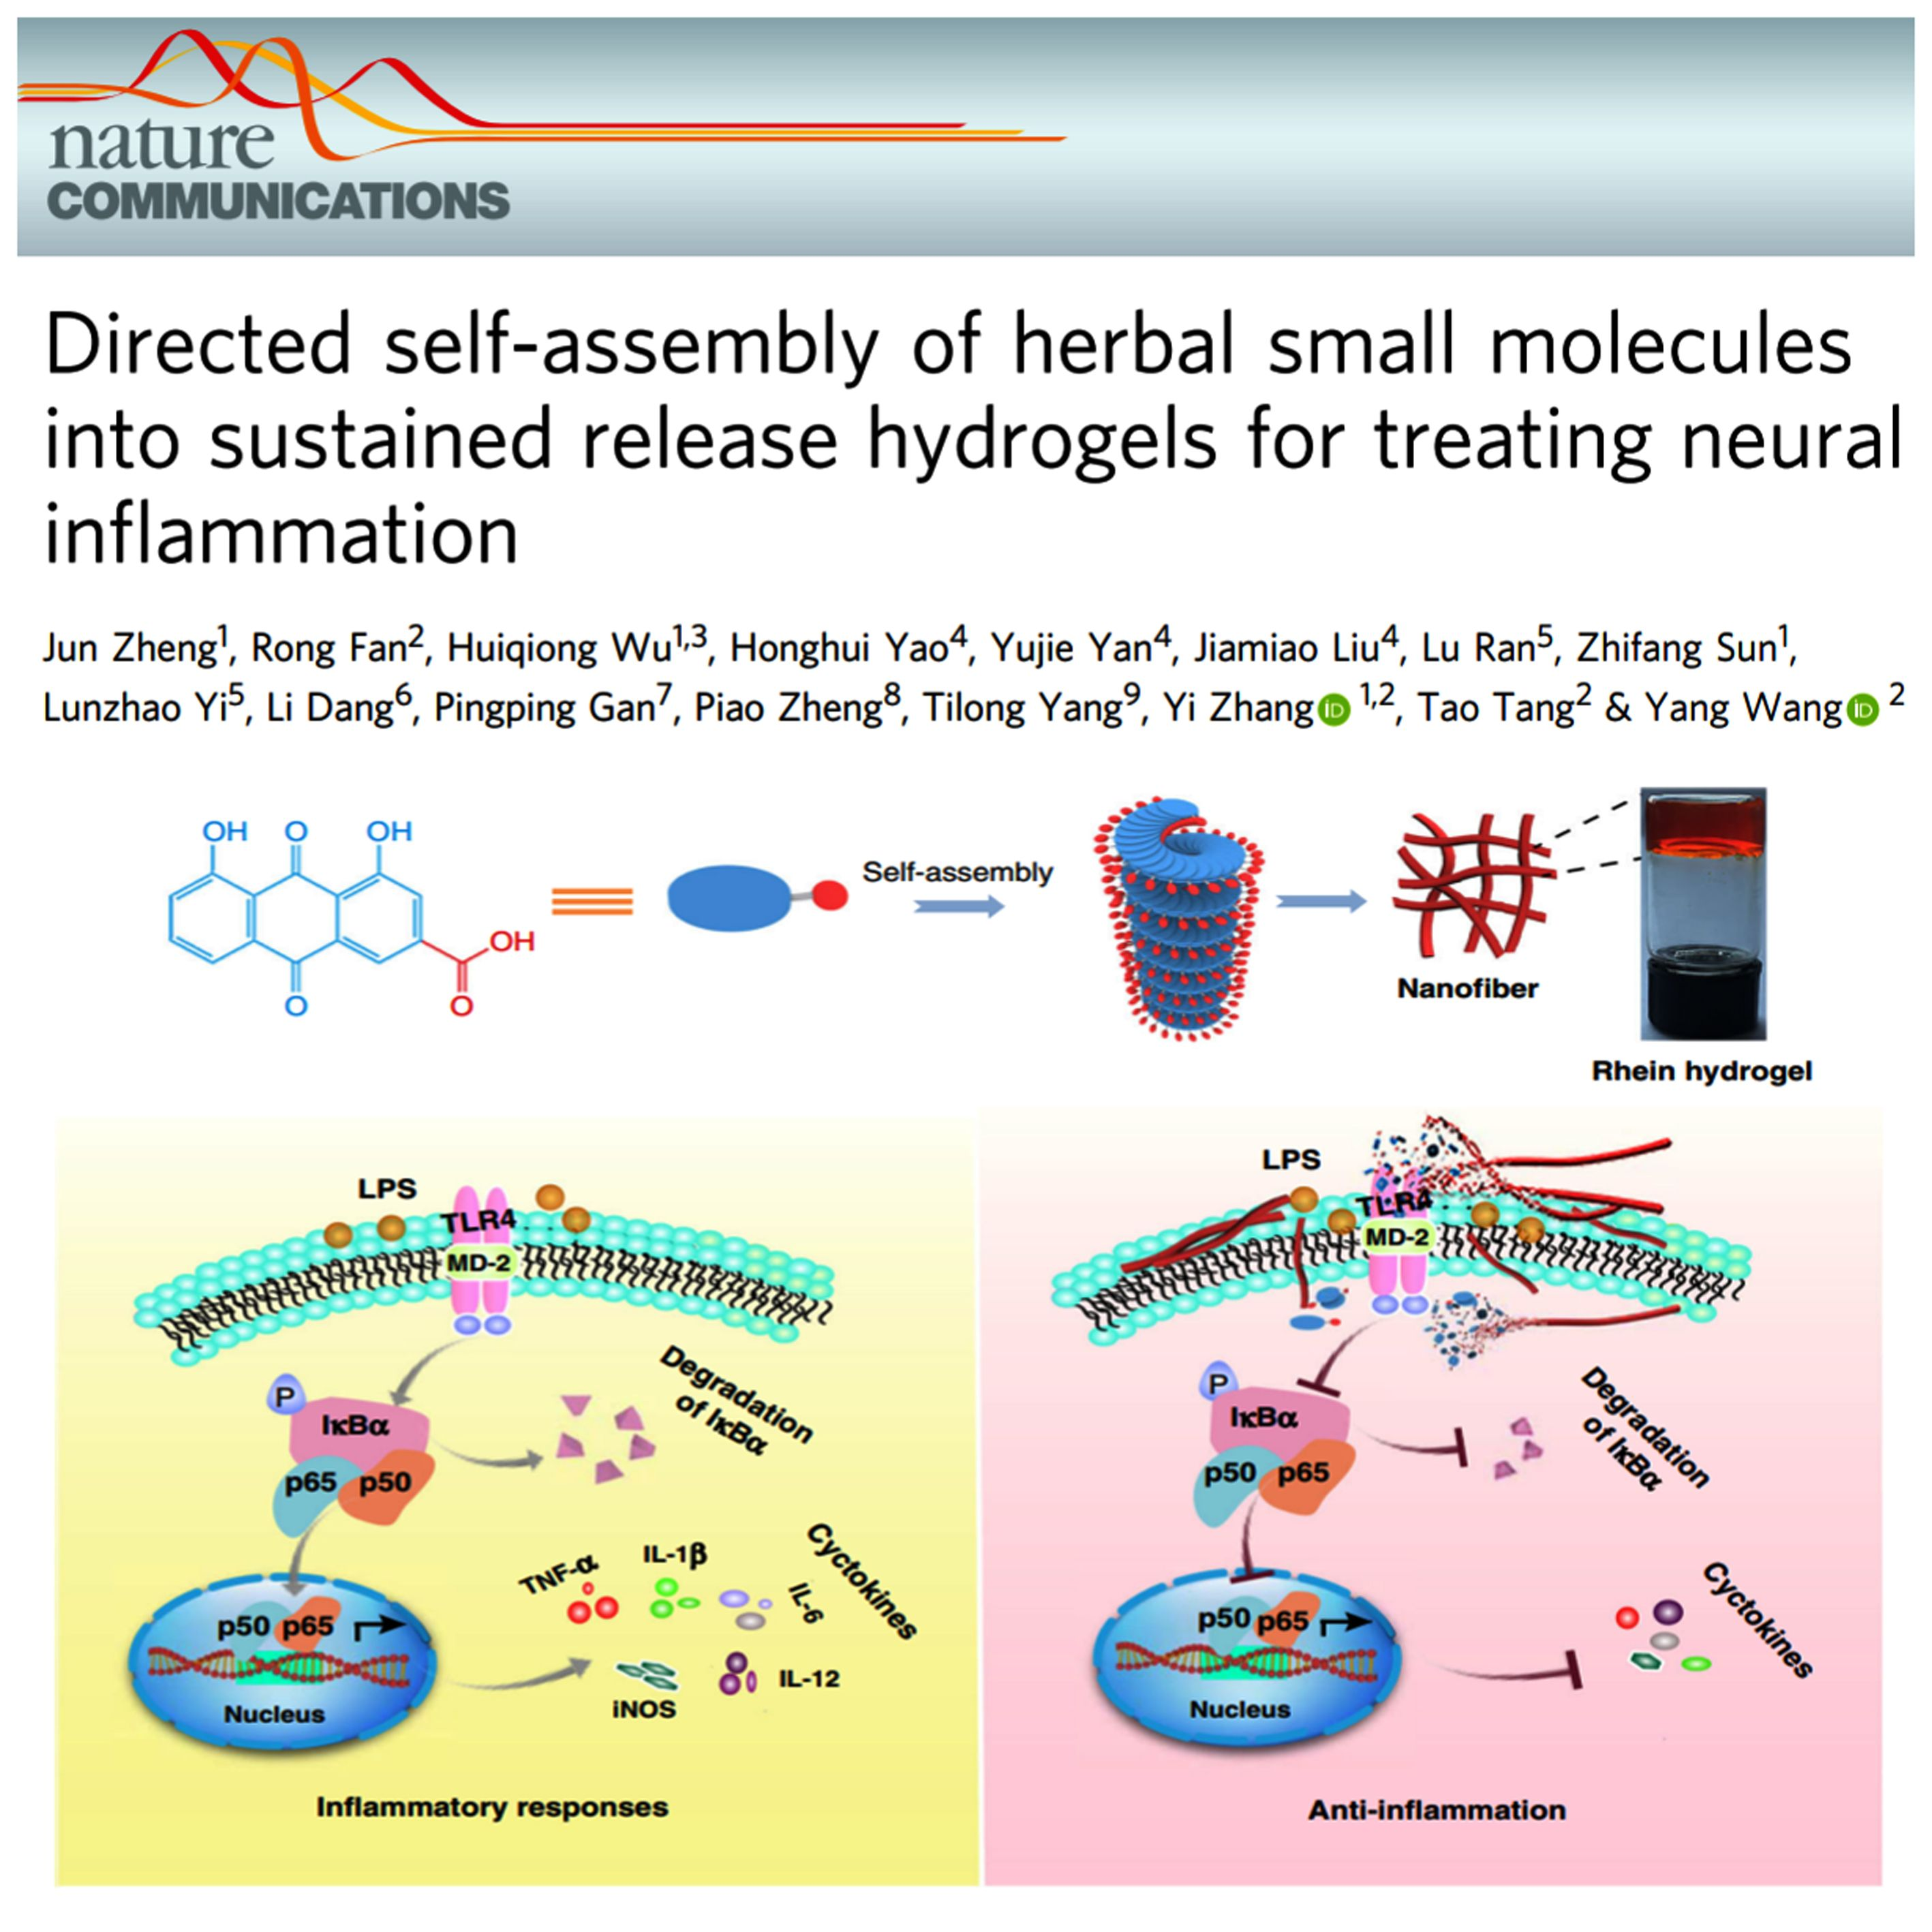 Directed Self-assembly Of Herbal Small Molecules Into